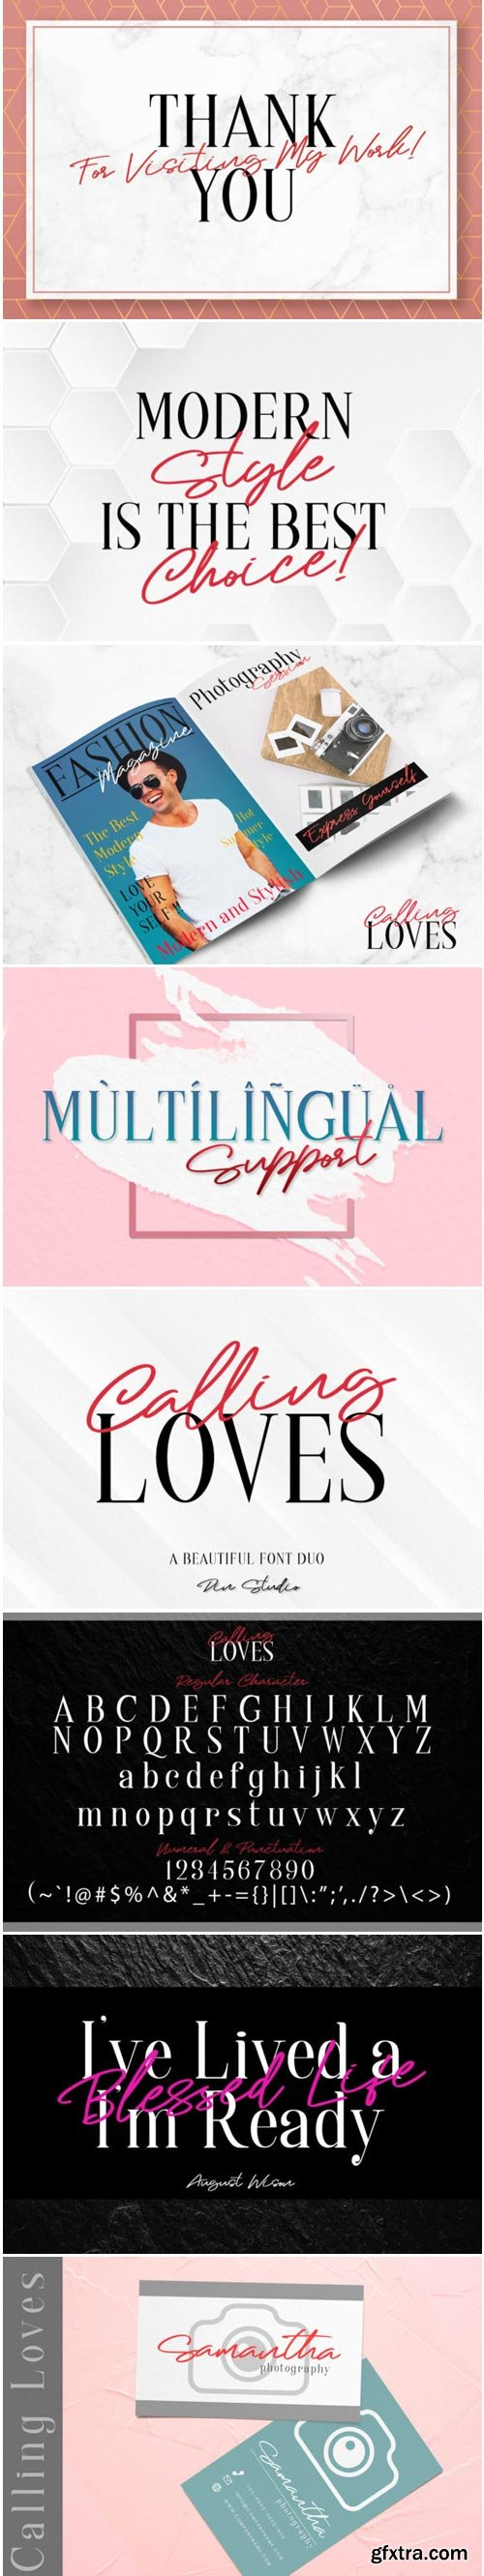 Calling Loves Duo Font